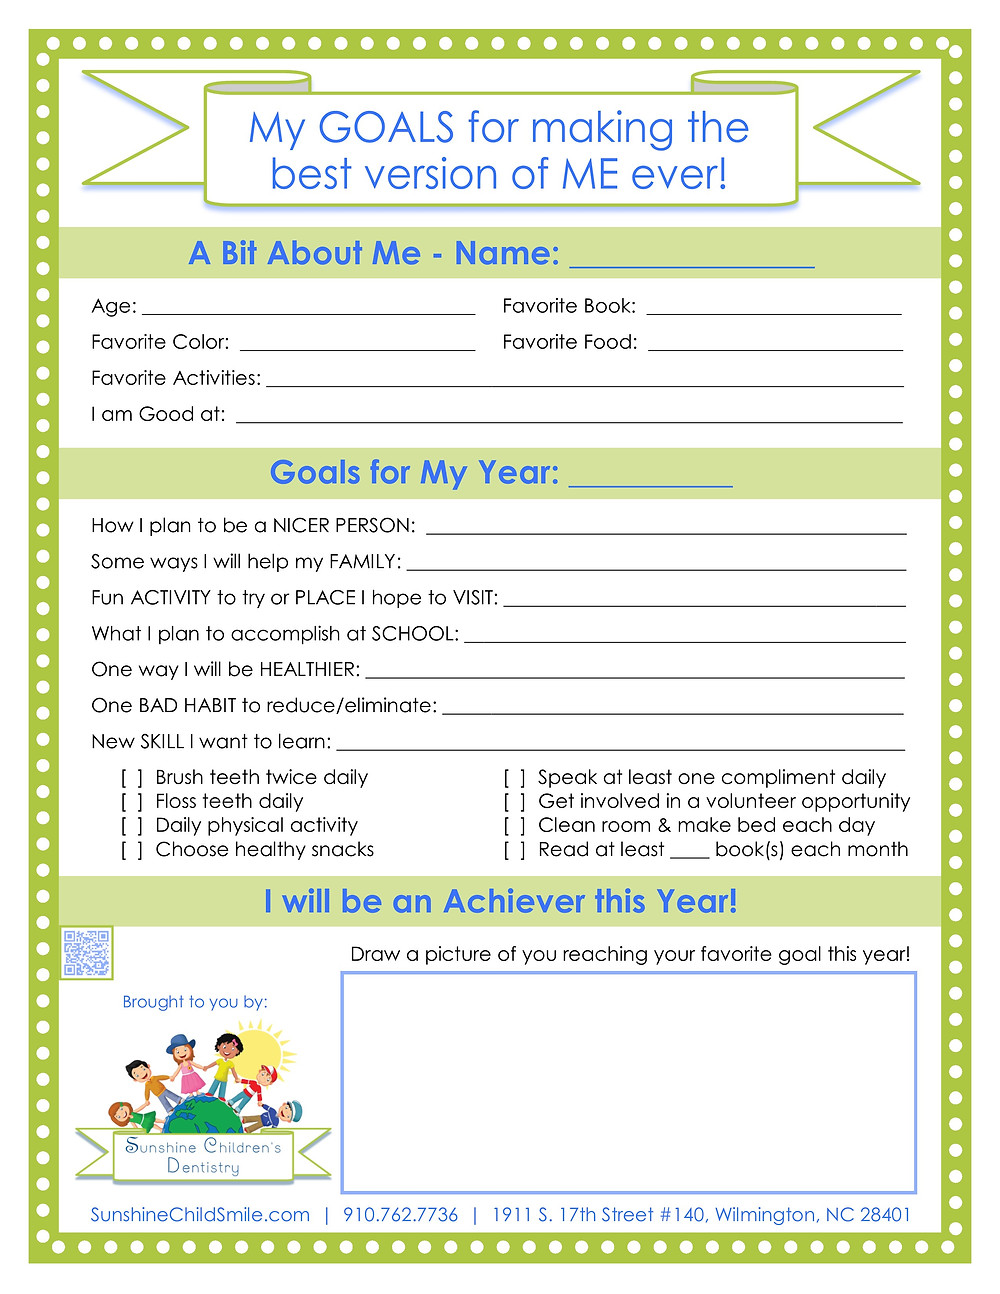 """FREE PRINTABLE: """"My GOALS for making the best version of ME ever!"""""""